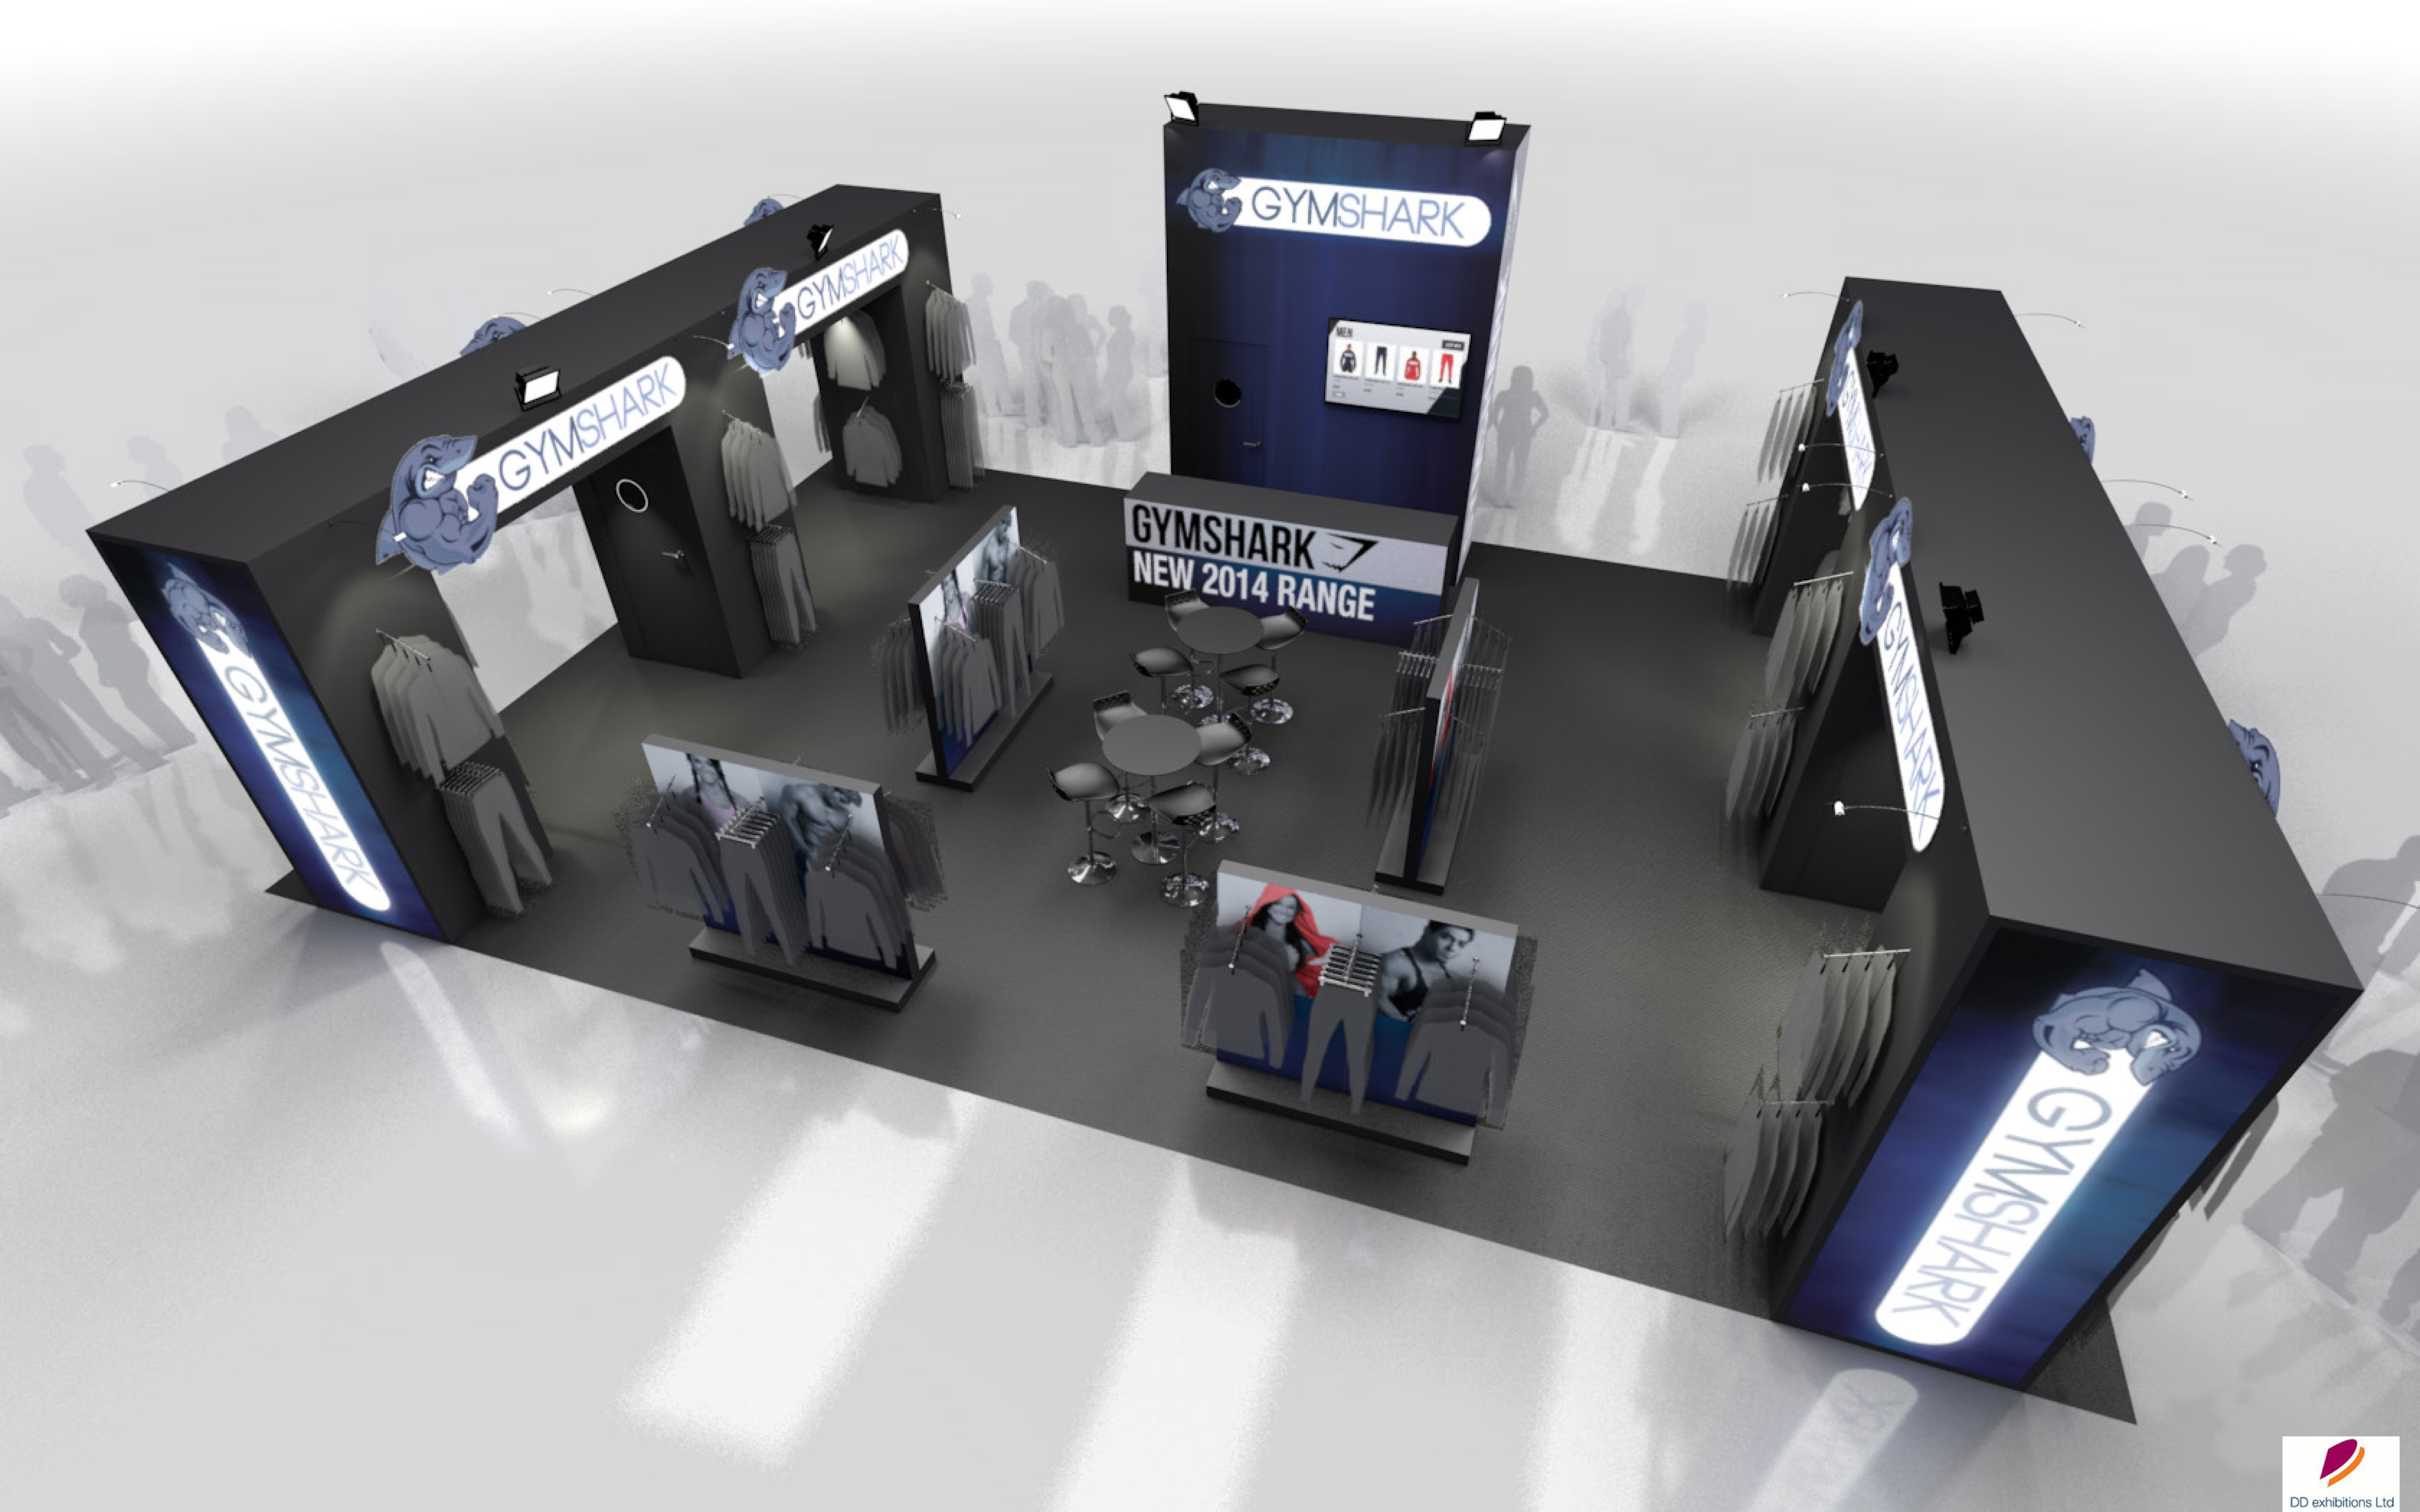 Corner Exhibition Stands Quest : Exhibition stand design stand design created for gym shark for